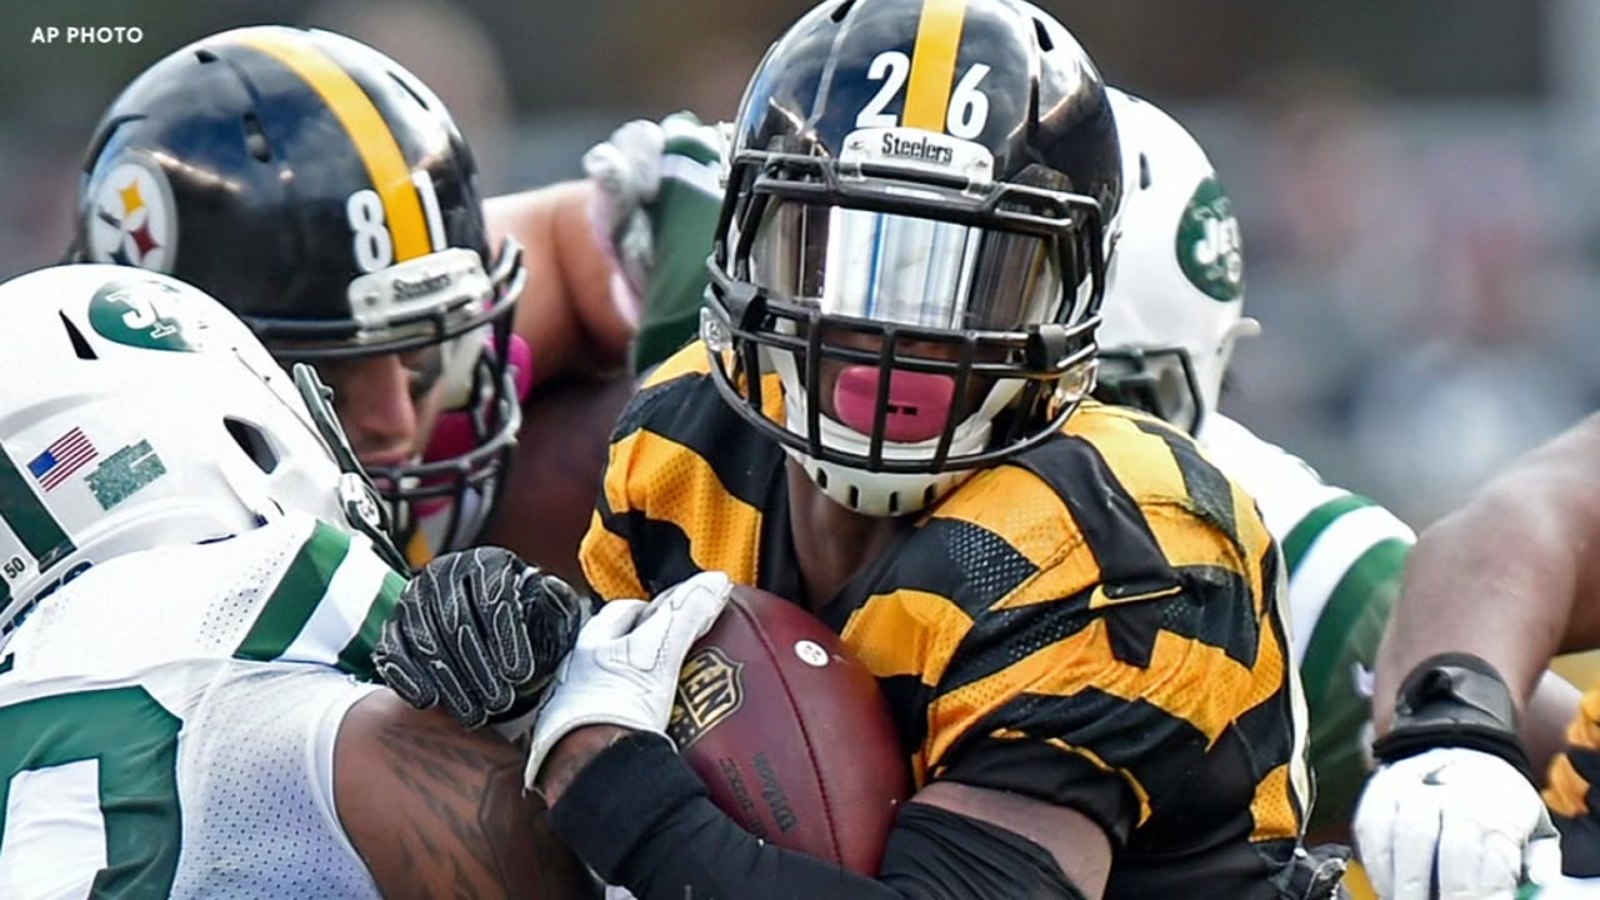 Fast facts about Le'Veon Bell